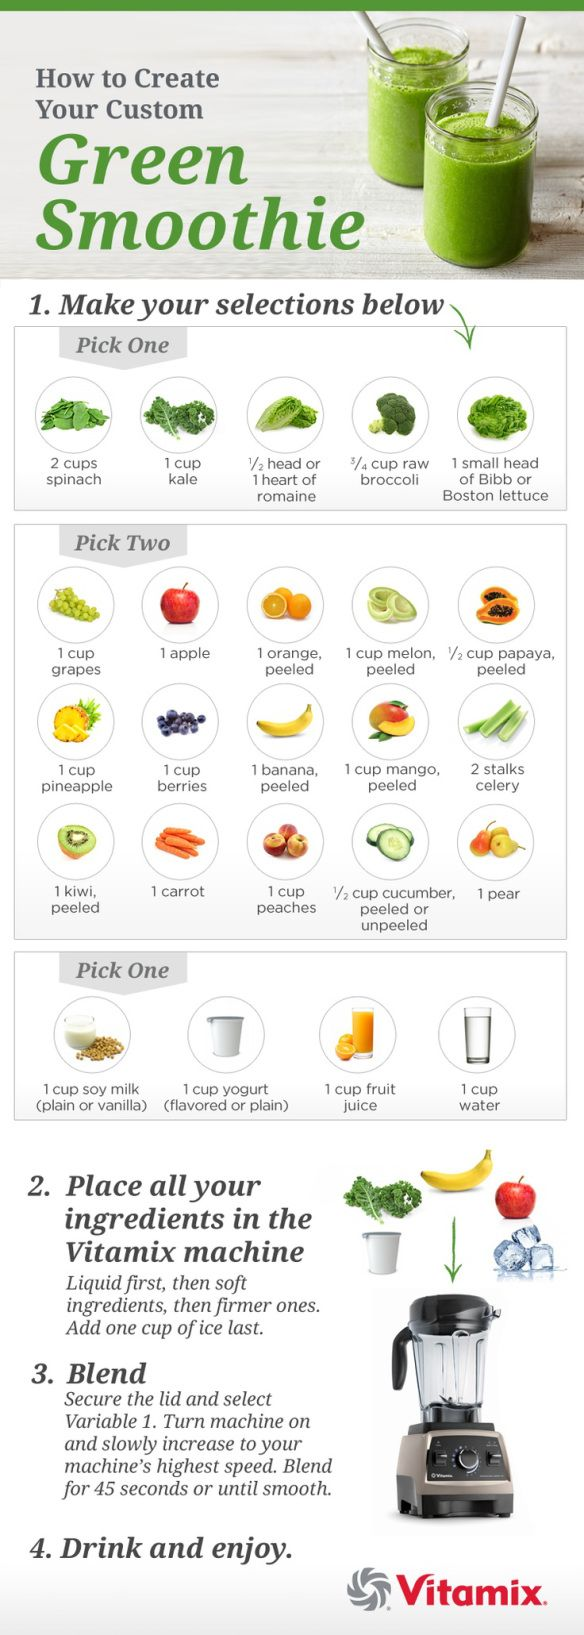 green smoothie - I miss my morning smoothies! Goal for the week - start back!